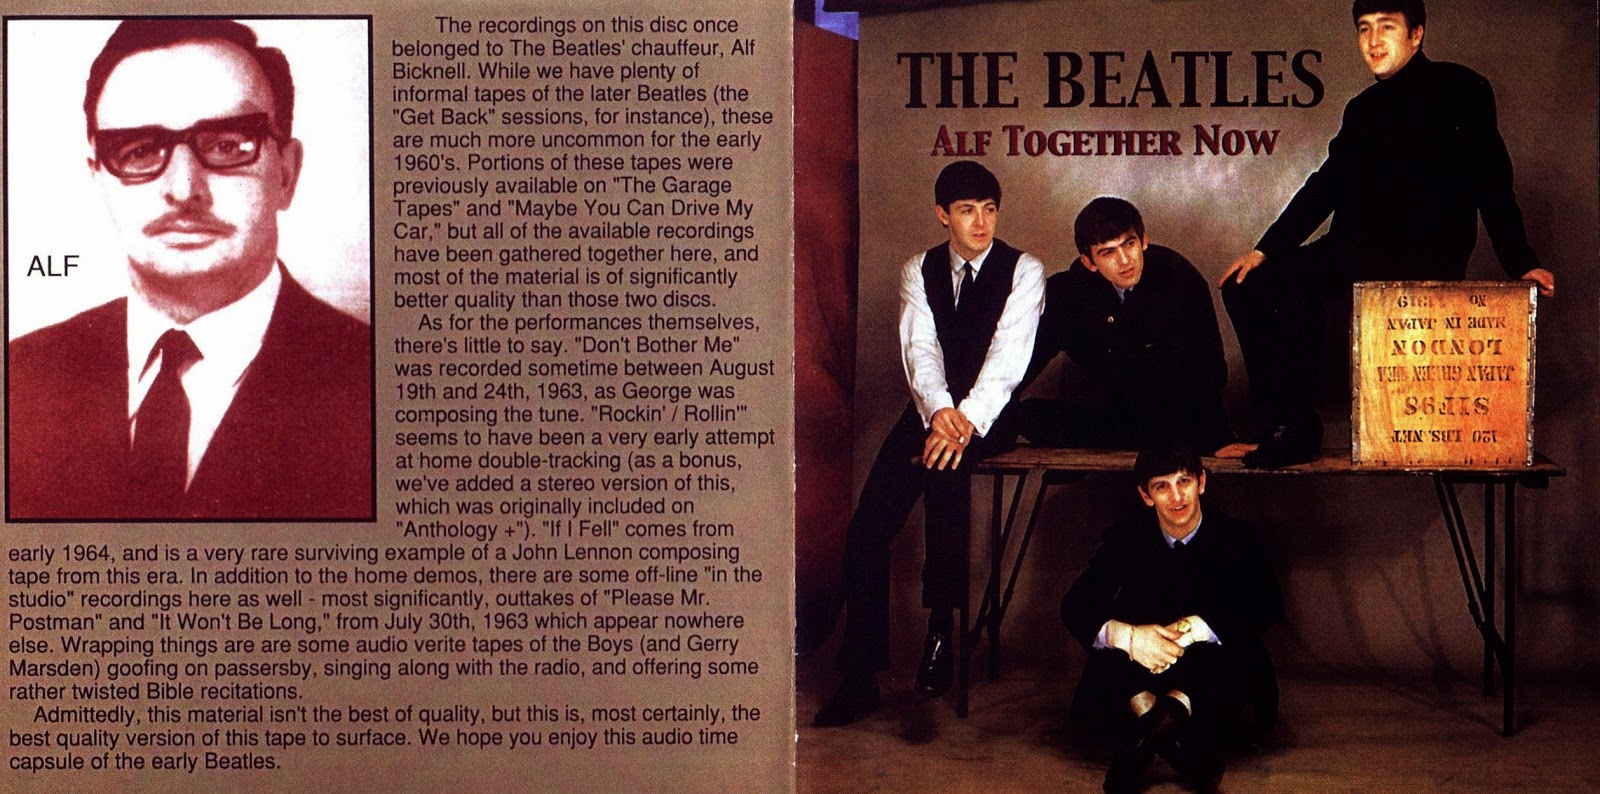 Beatles, The - And Now: The Beatles